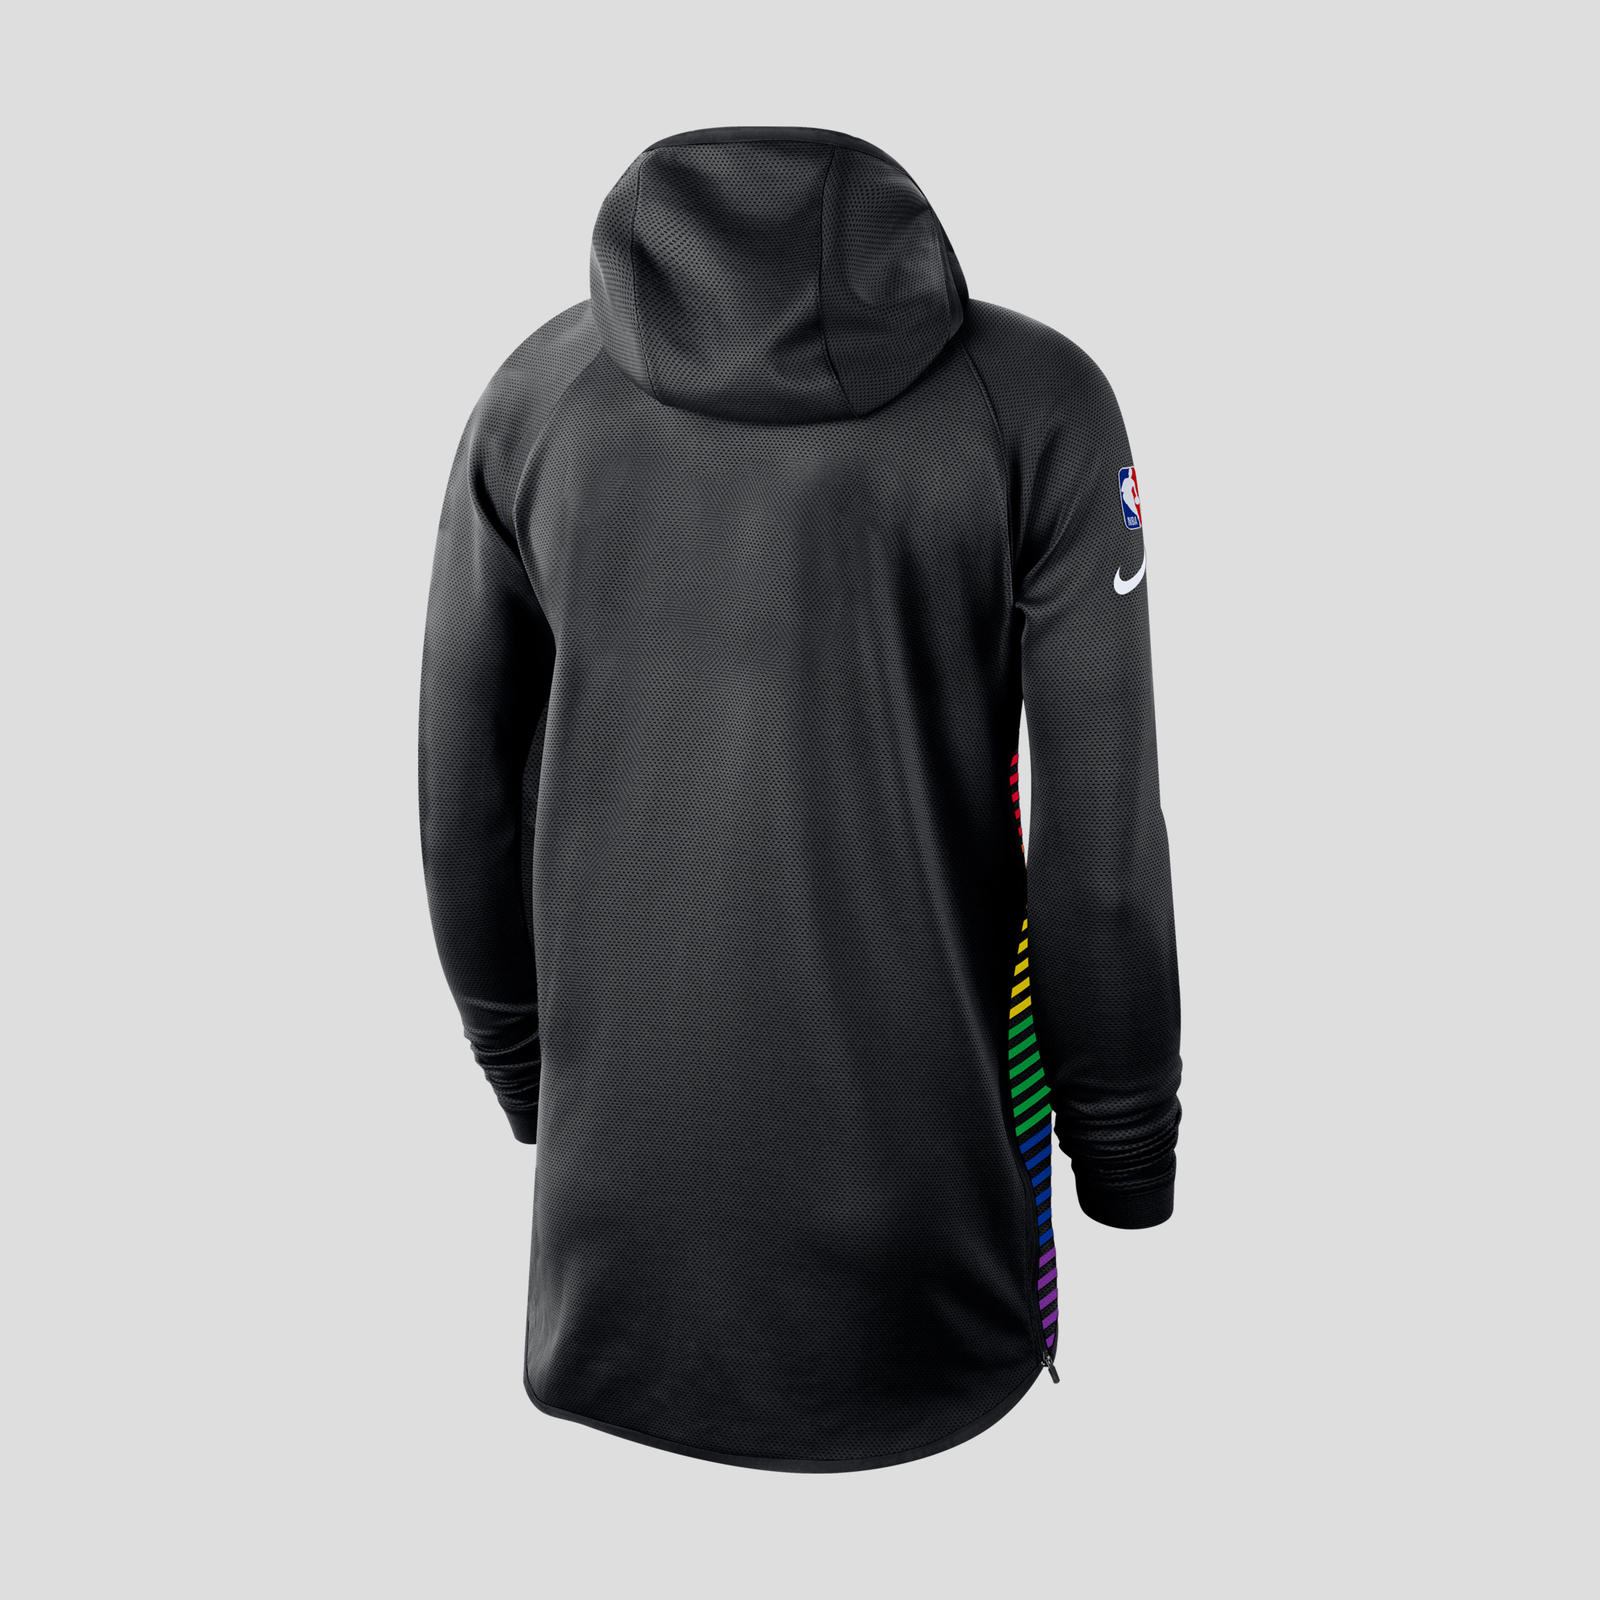 Nike NBA Earned Edition Showtime Hoodies 2019-20 Official Images 23